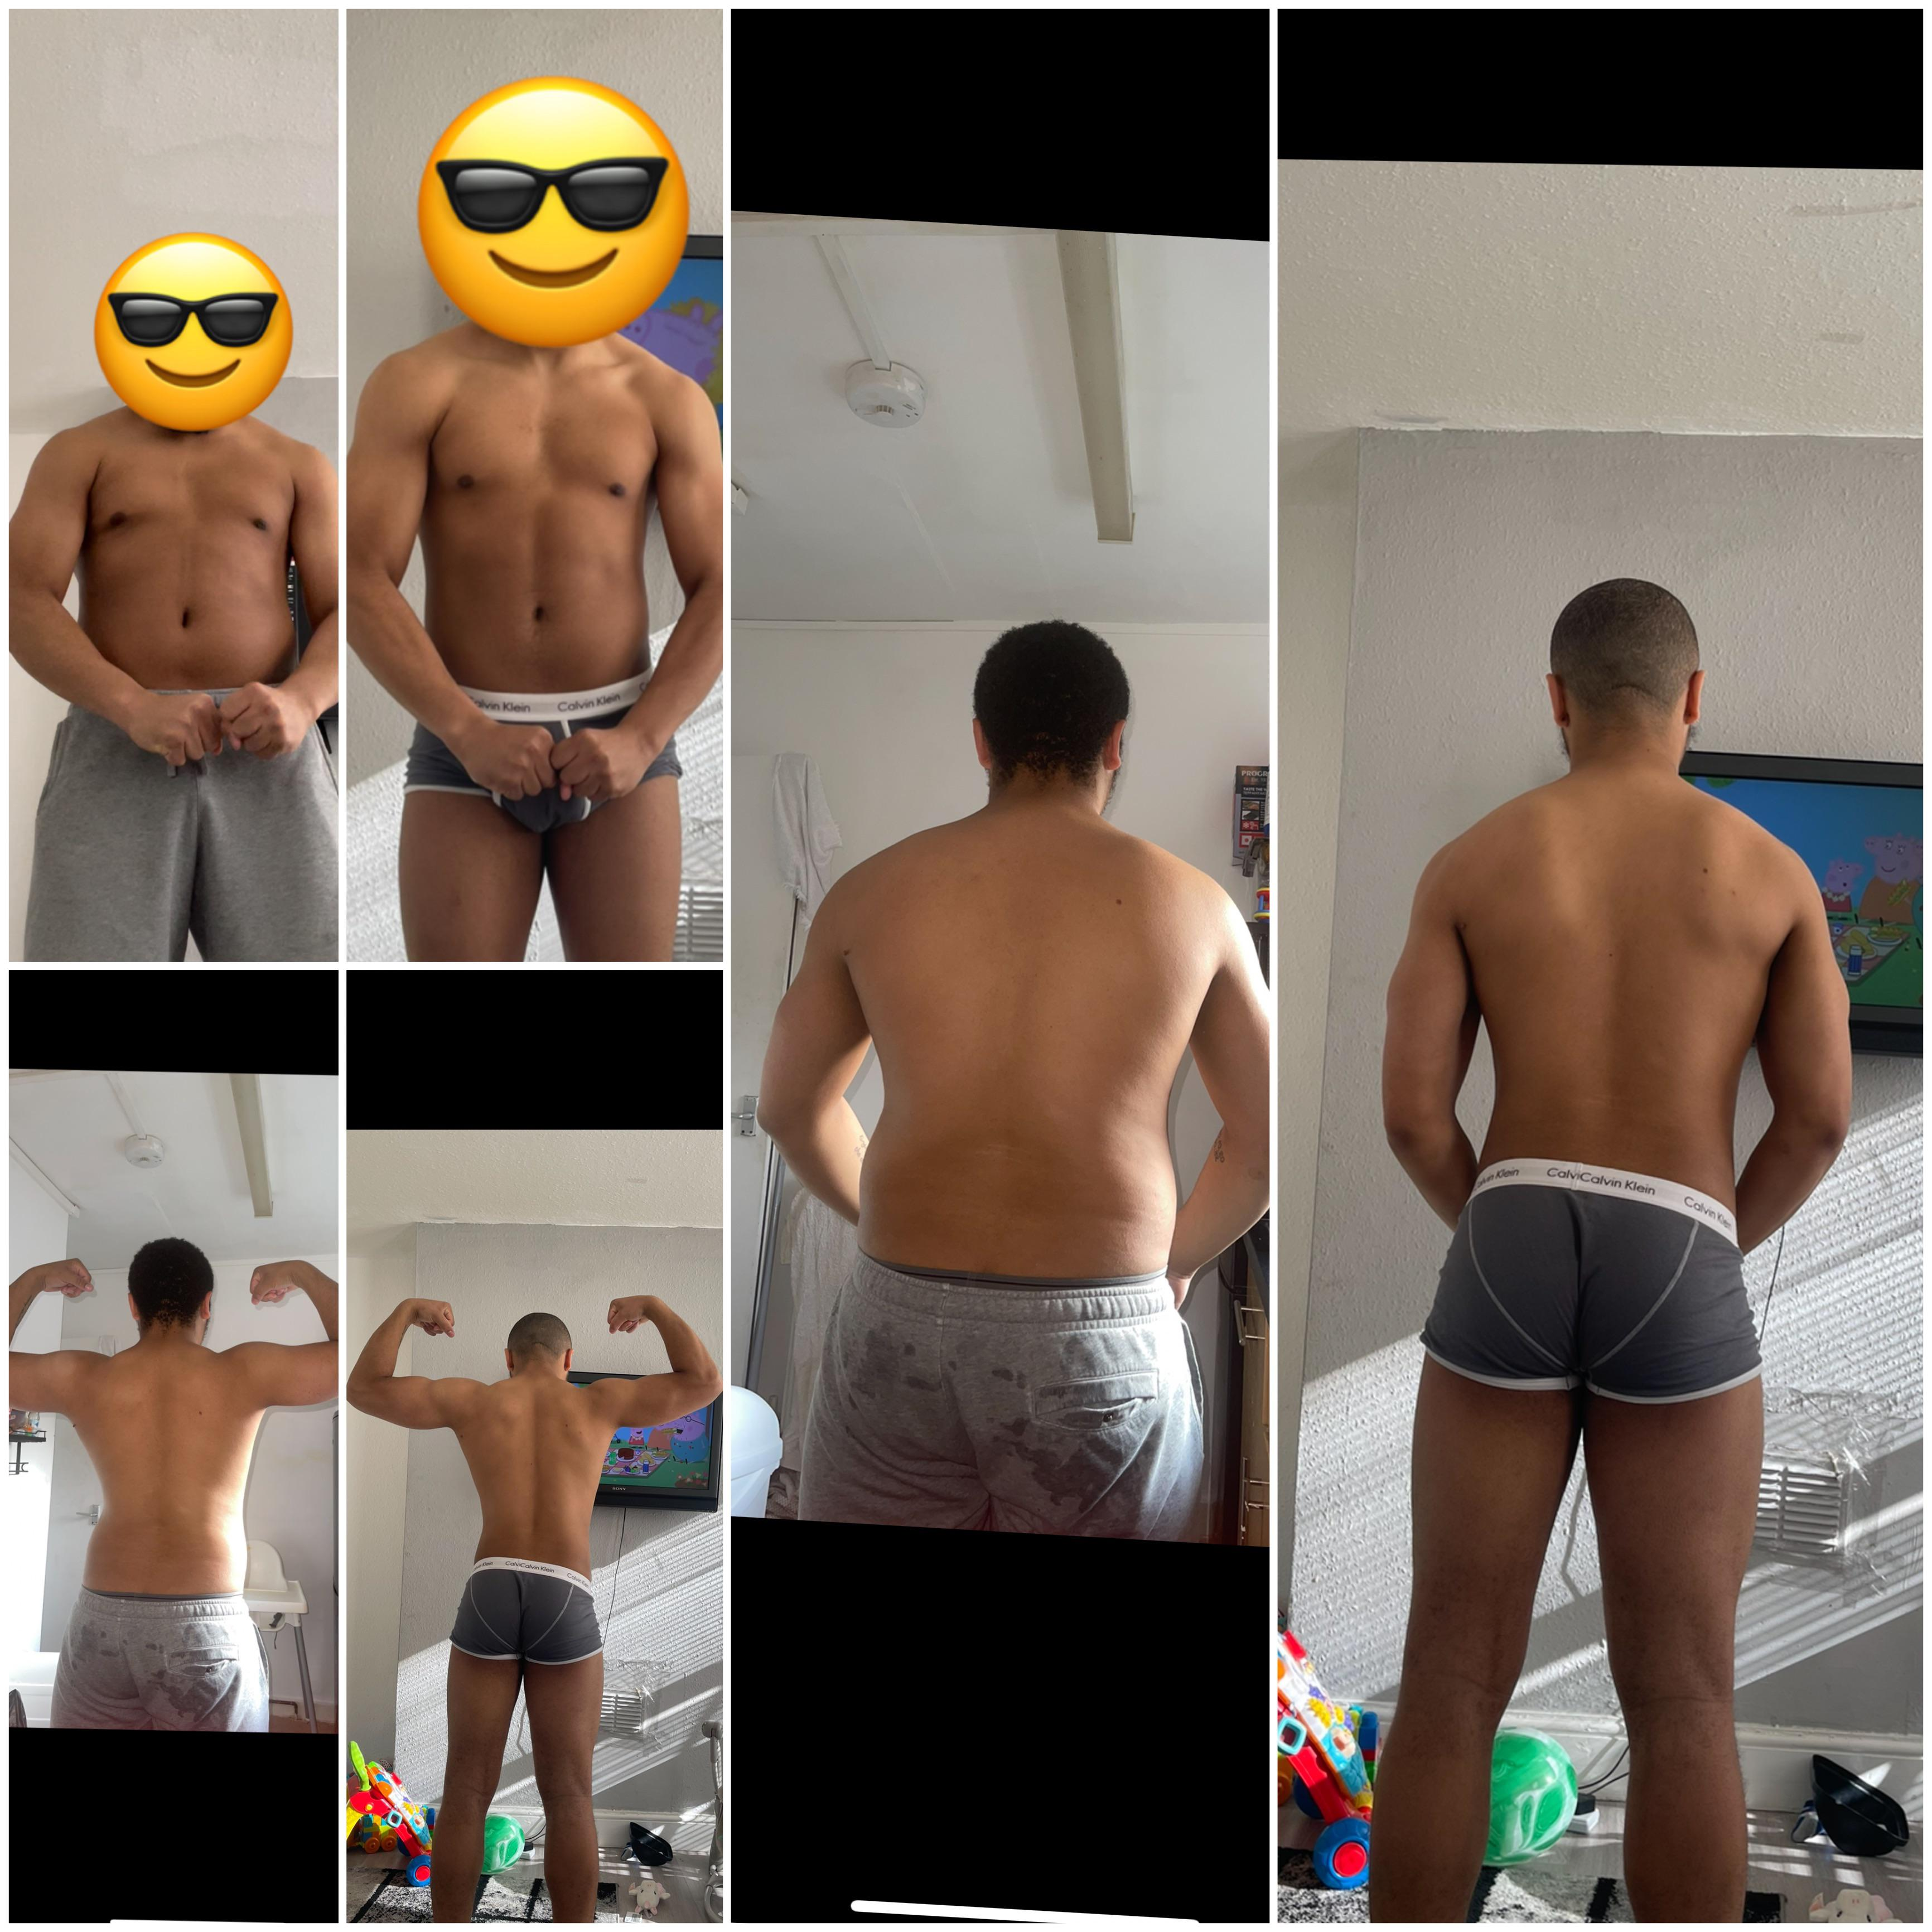 6 foot Male Before and After 44 lbs Weight Loss 246 lbs to 202 lbs